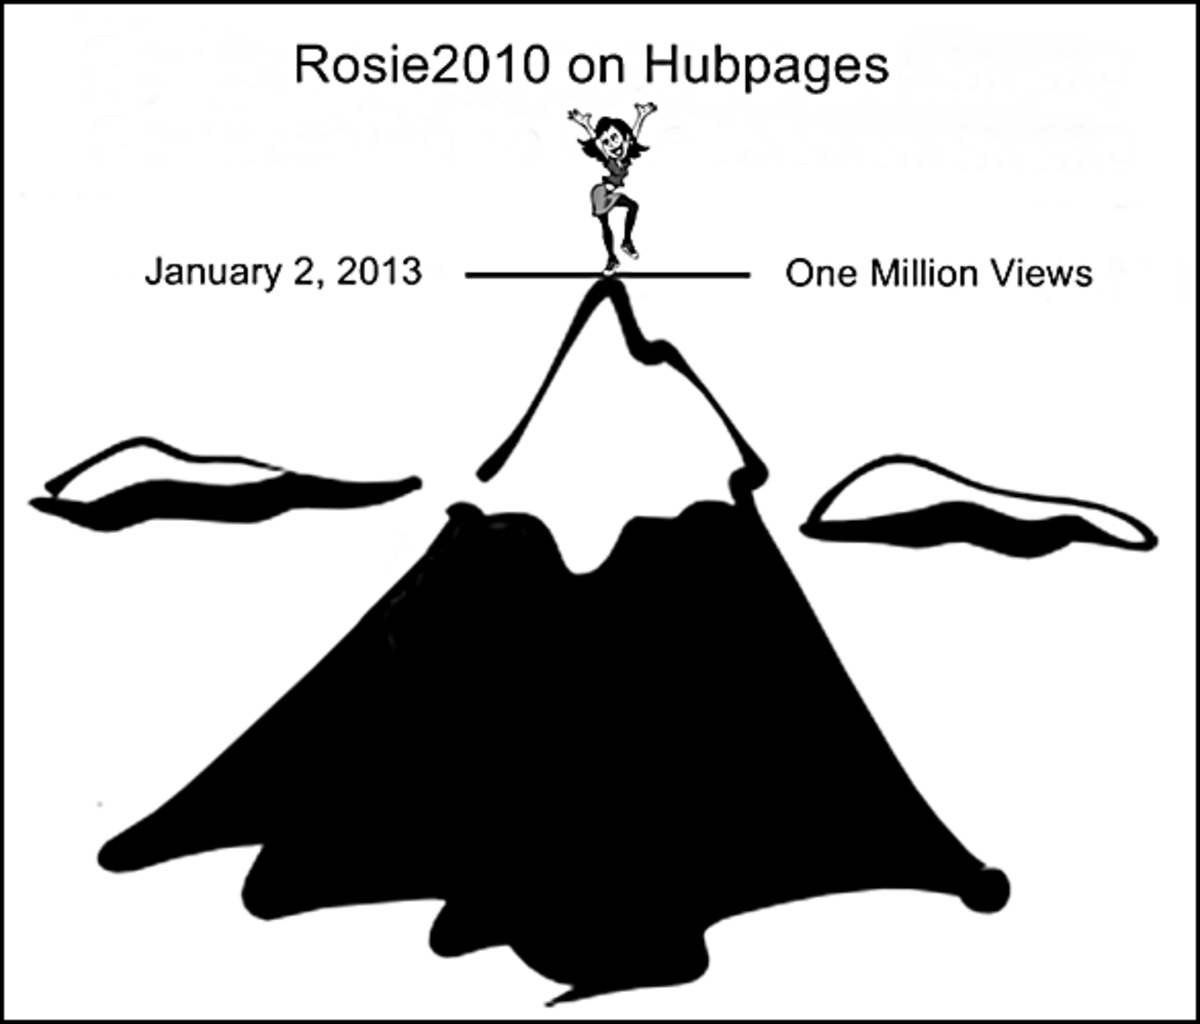 - Rosie2010 on Hubpages - One Million Views, image by Rosie2010 derived from cliparts by OCAL www.clker.com -